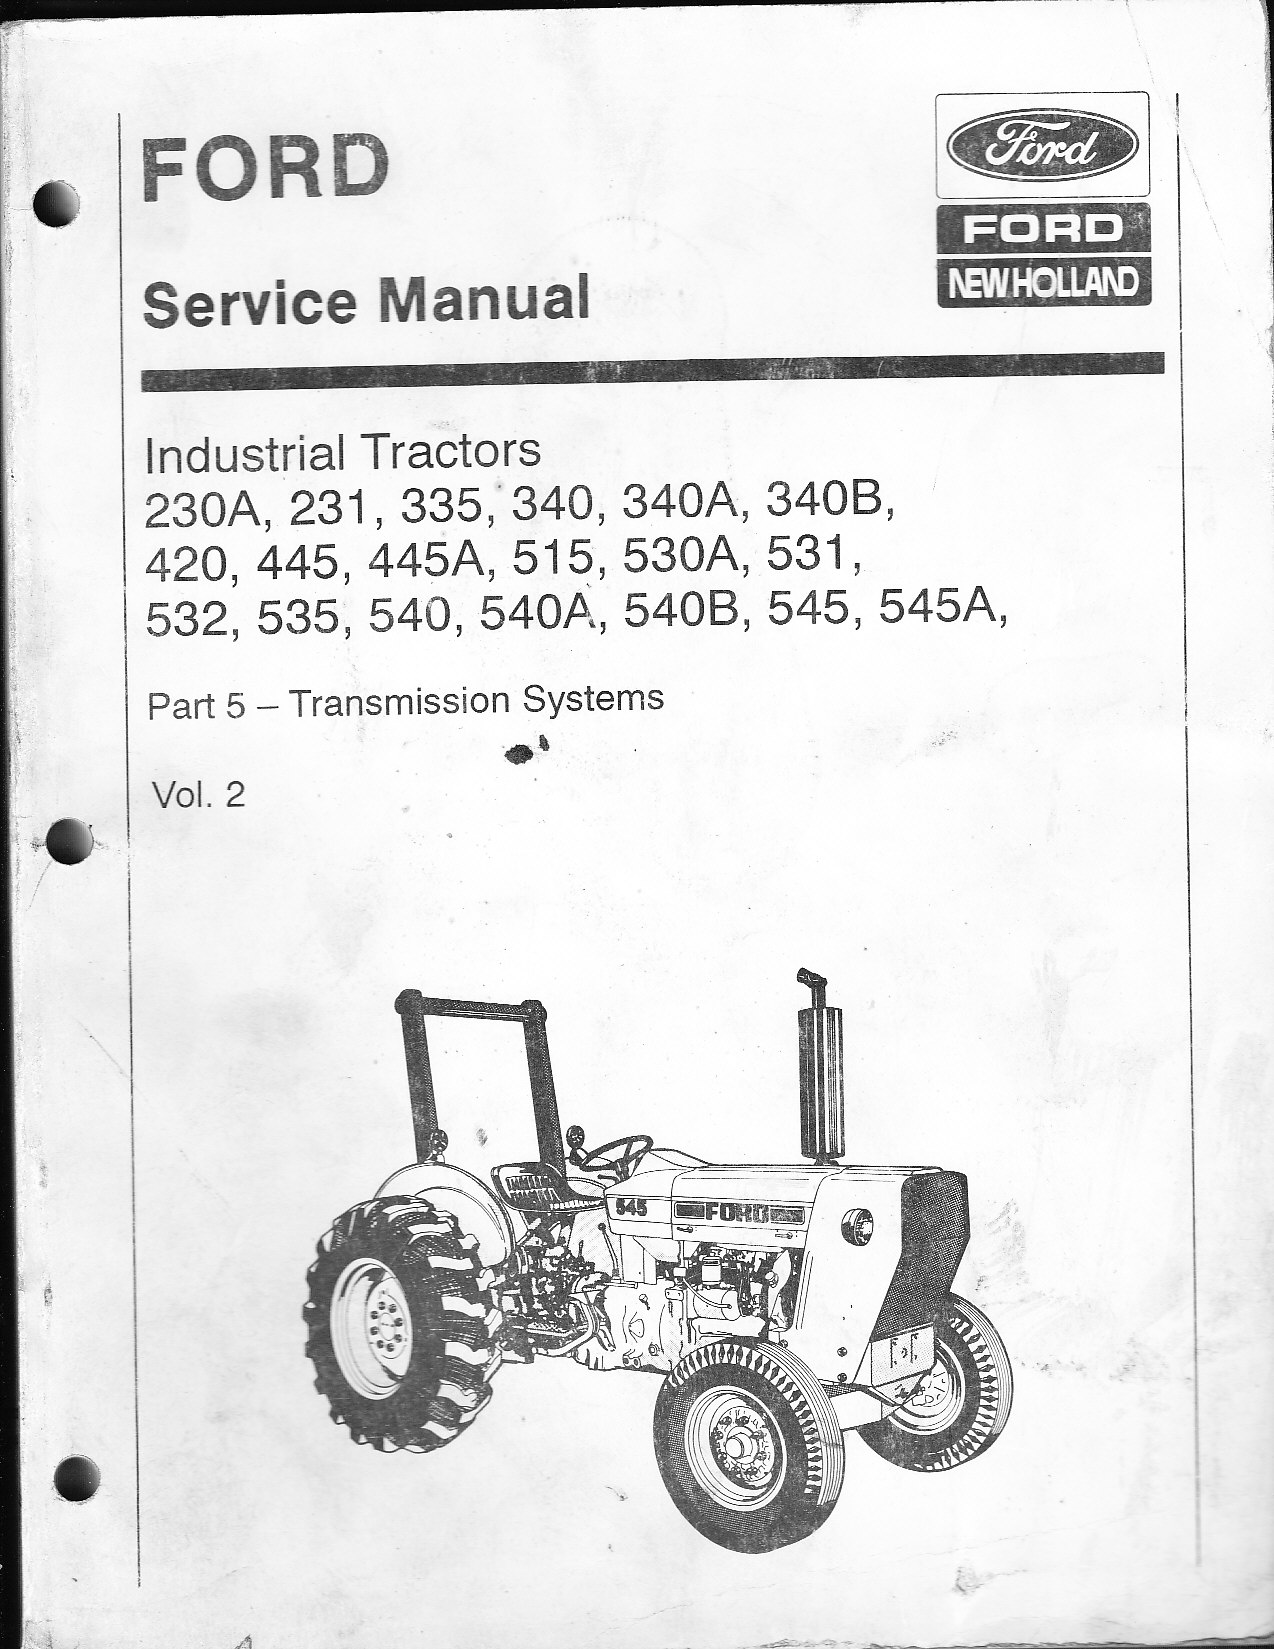 ford 420 tractor engine manual user guide manual that easy to read u2022 rh lenderdirectory co Ford 1720 Tractor Manual Ford Tractor Parts Manual